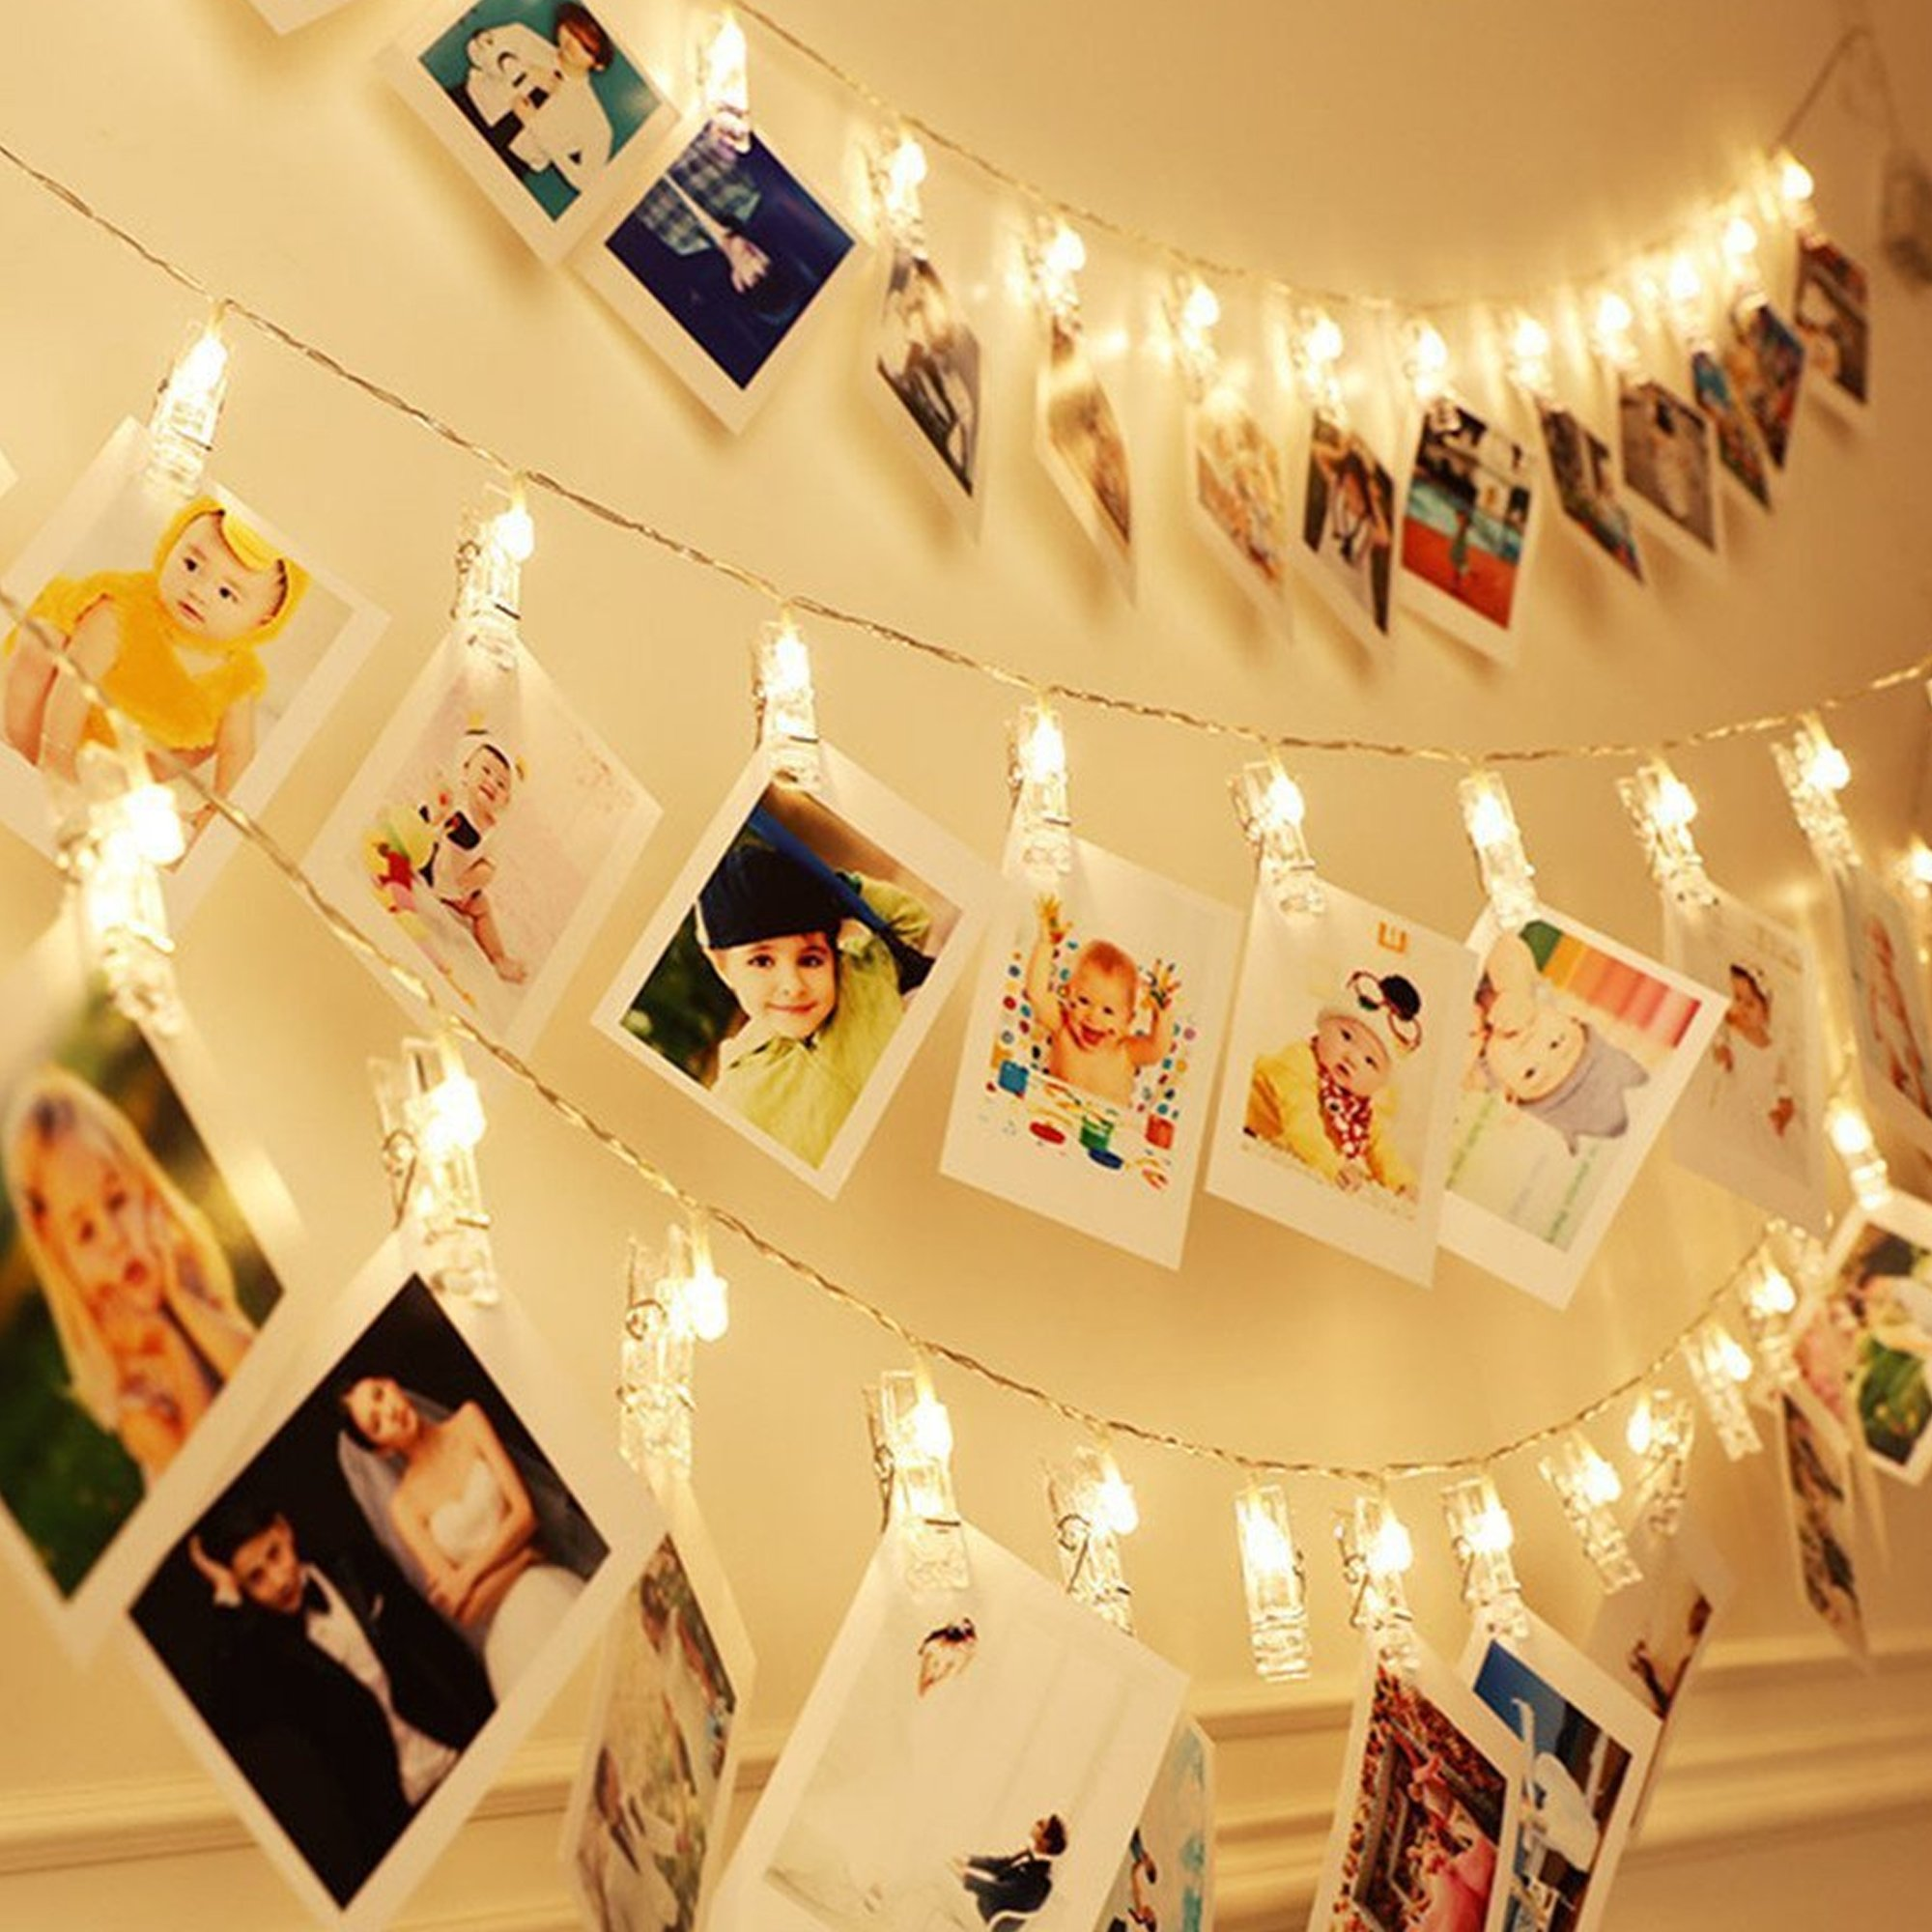 5m Hanging Picture Decoration Fairy Lights 20 Photo Clips String Lights in Warm White for Birthday Parties & Home Décor by Glift(TM) (Image #2)